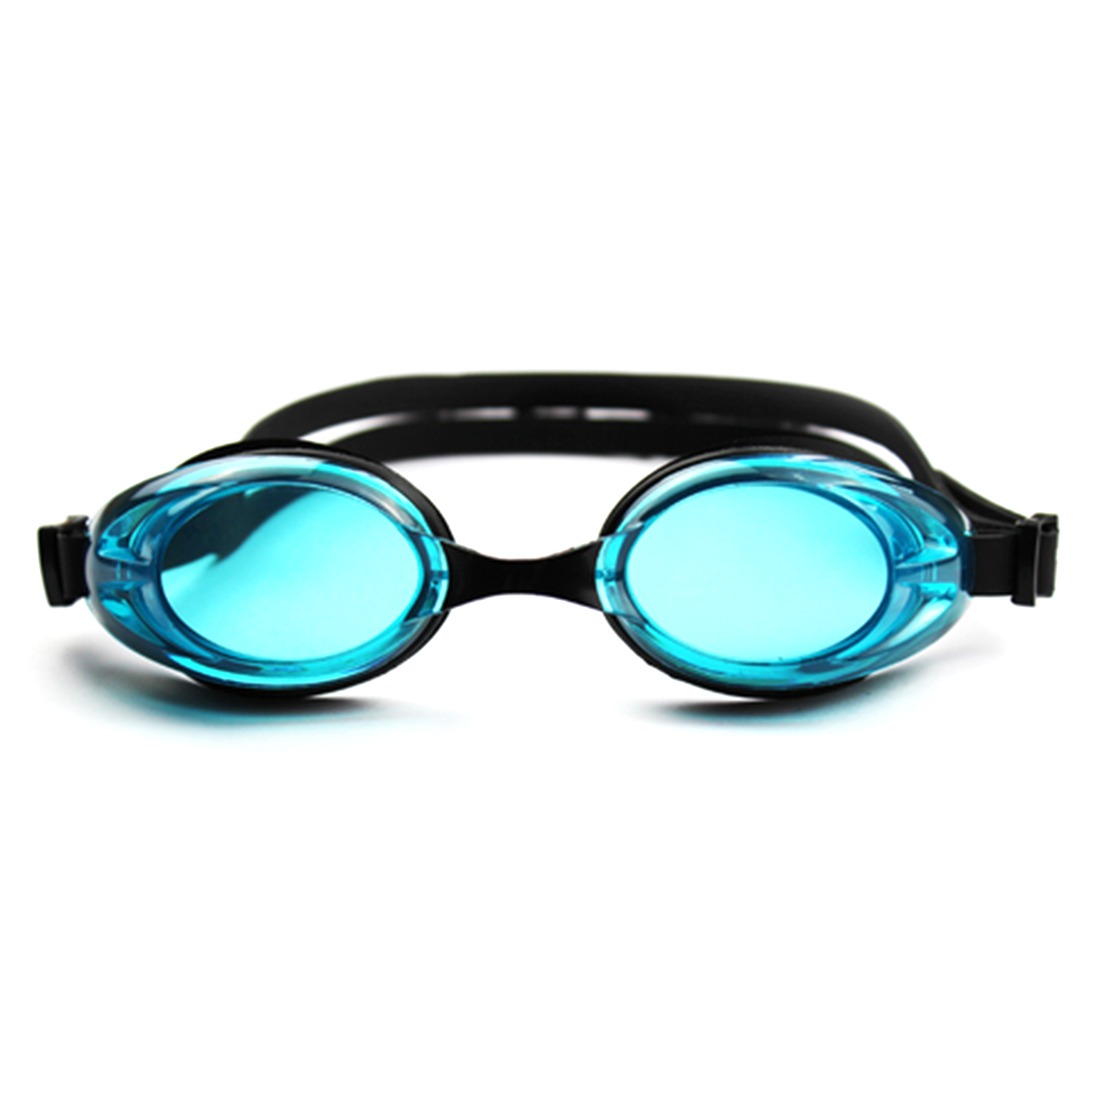 Children Diving Goggles Waterproof Anti-fog UV Protection Electroplating Swimming Glasses Lake Blue by